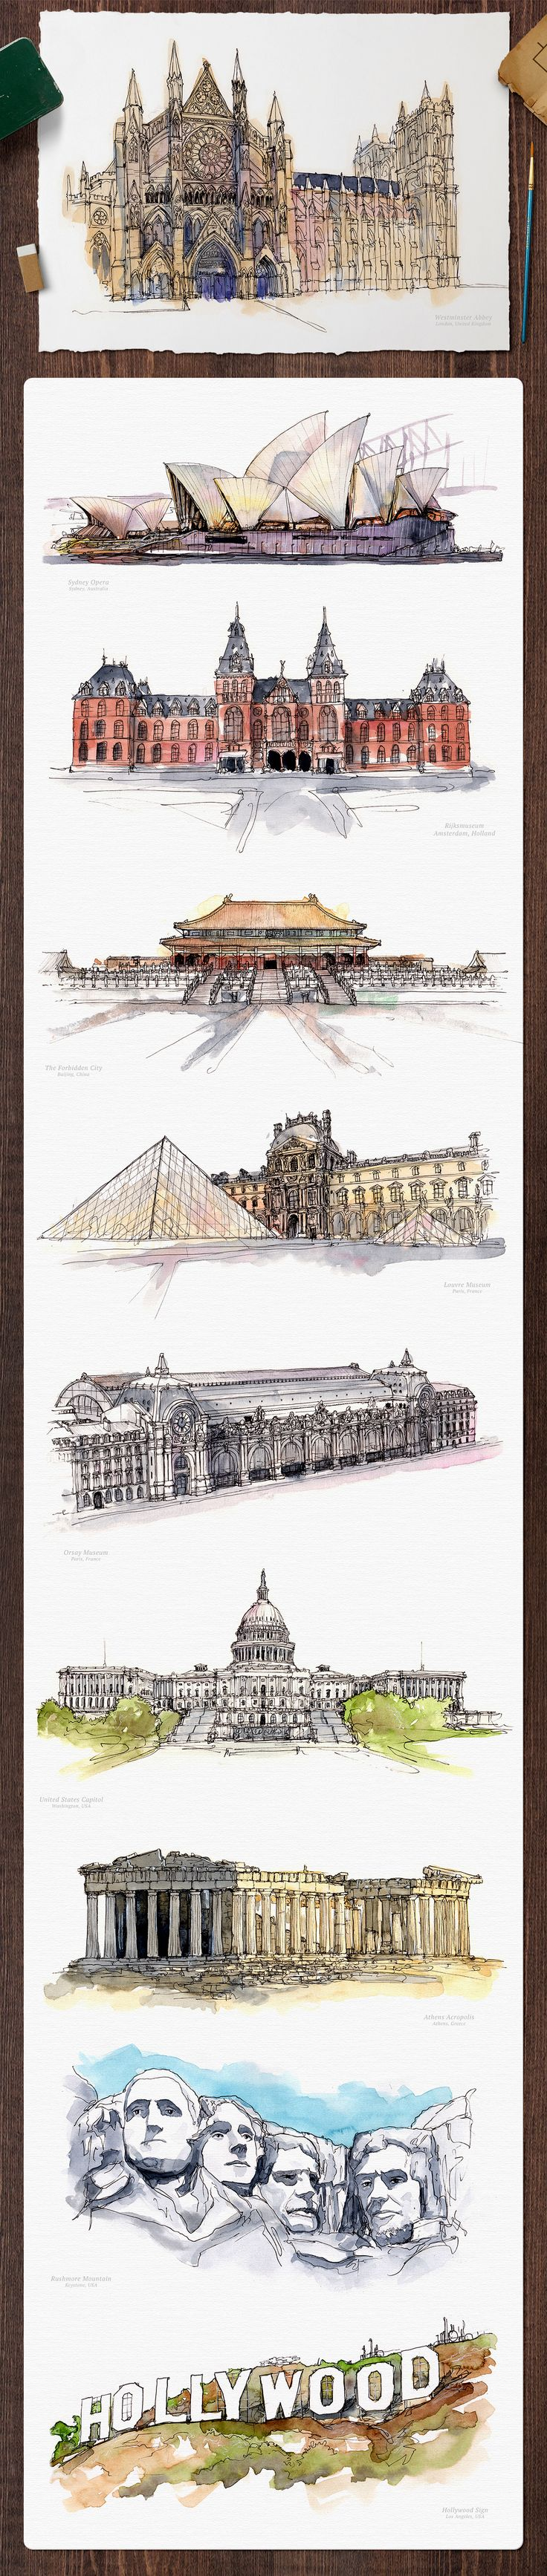 Watercolor Monument / Landmarks Paintings Pack.GET IT FROM